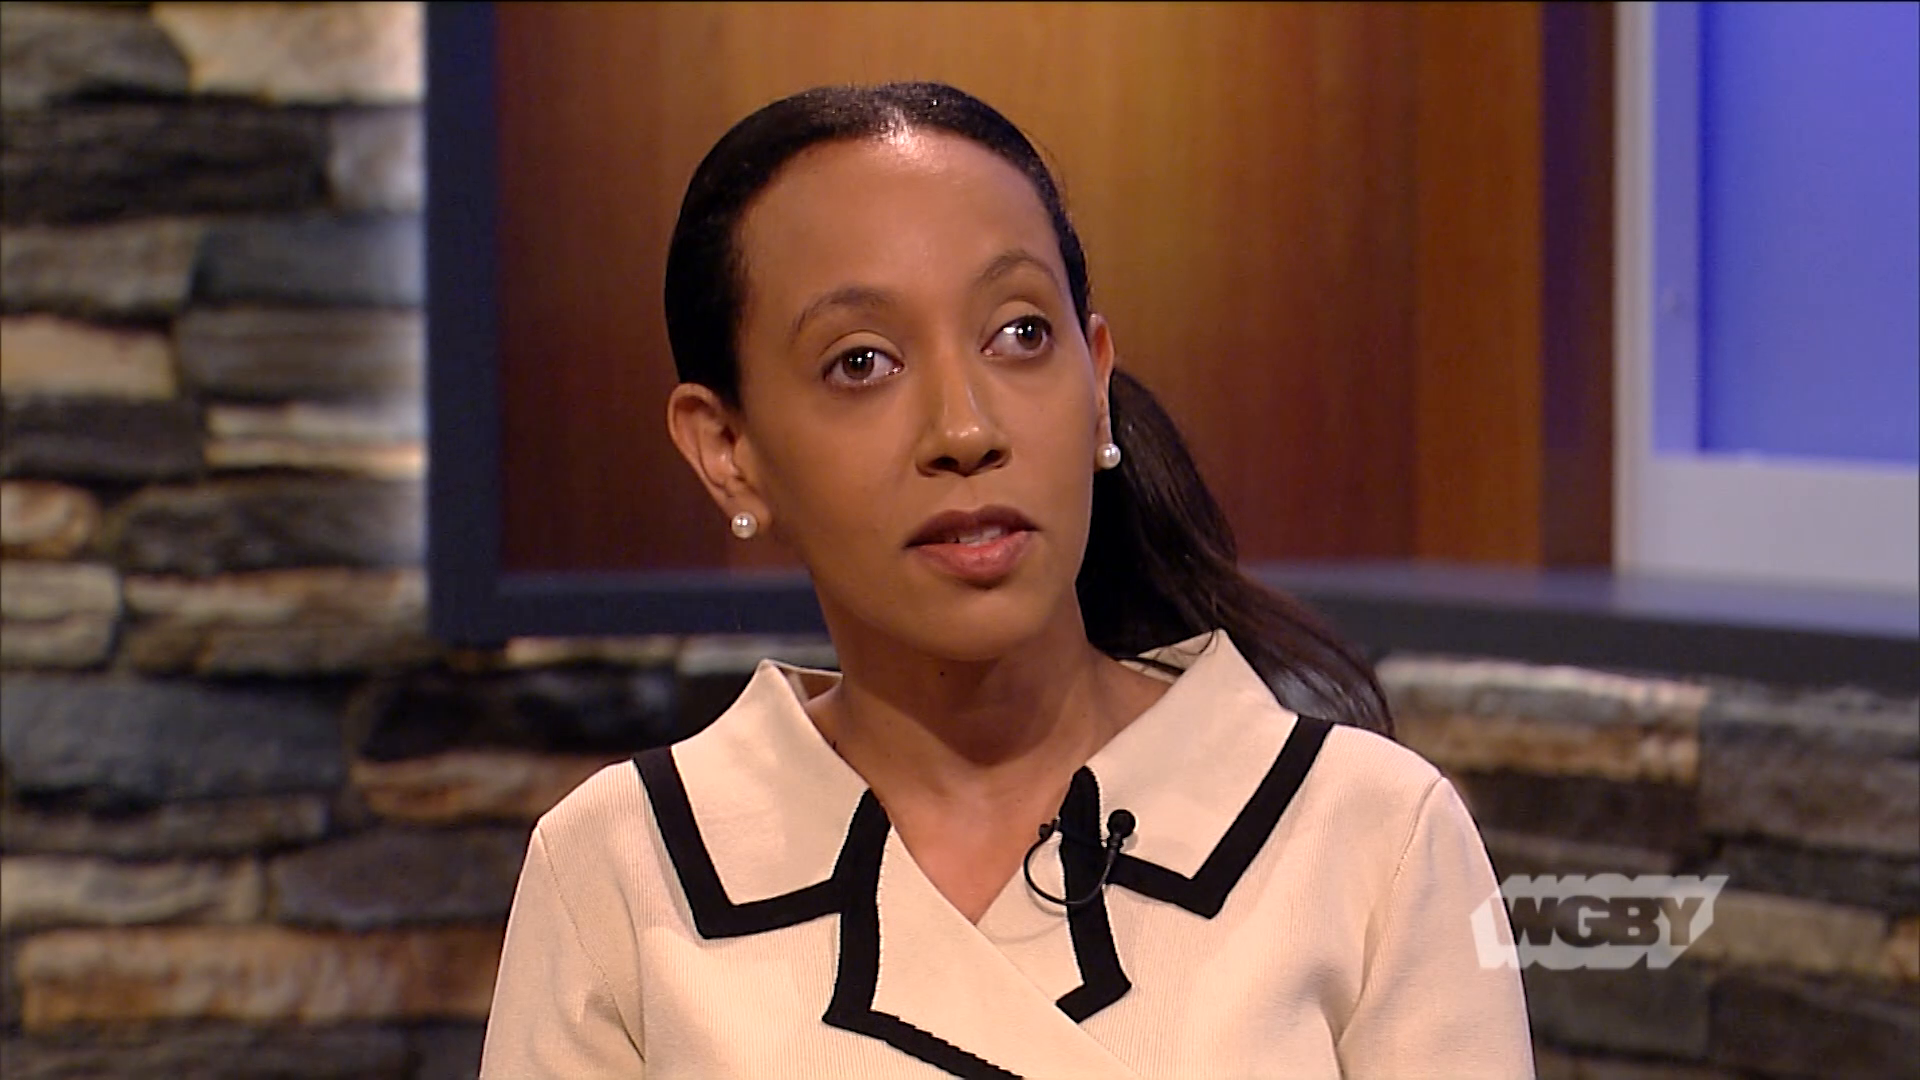 Disabilities advocate Haben Girma, the first deaf-blind person to graduate from Harvard Law, speaks about working to make equal opportunities available all.